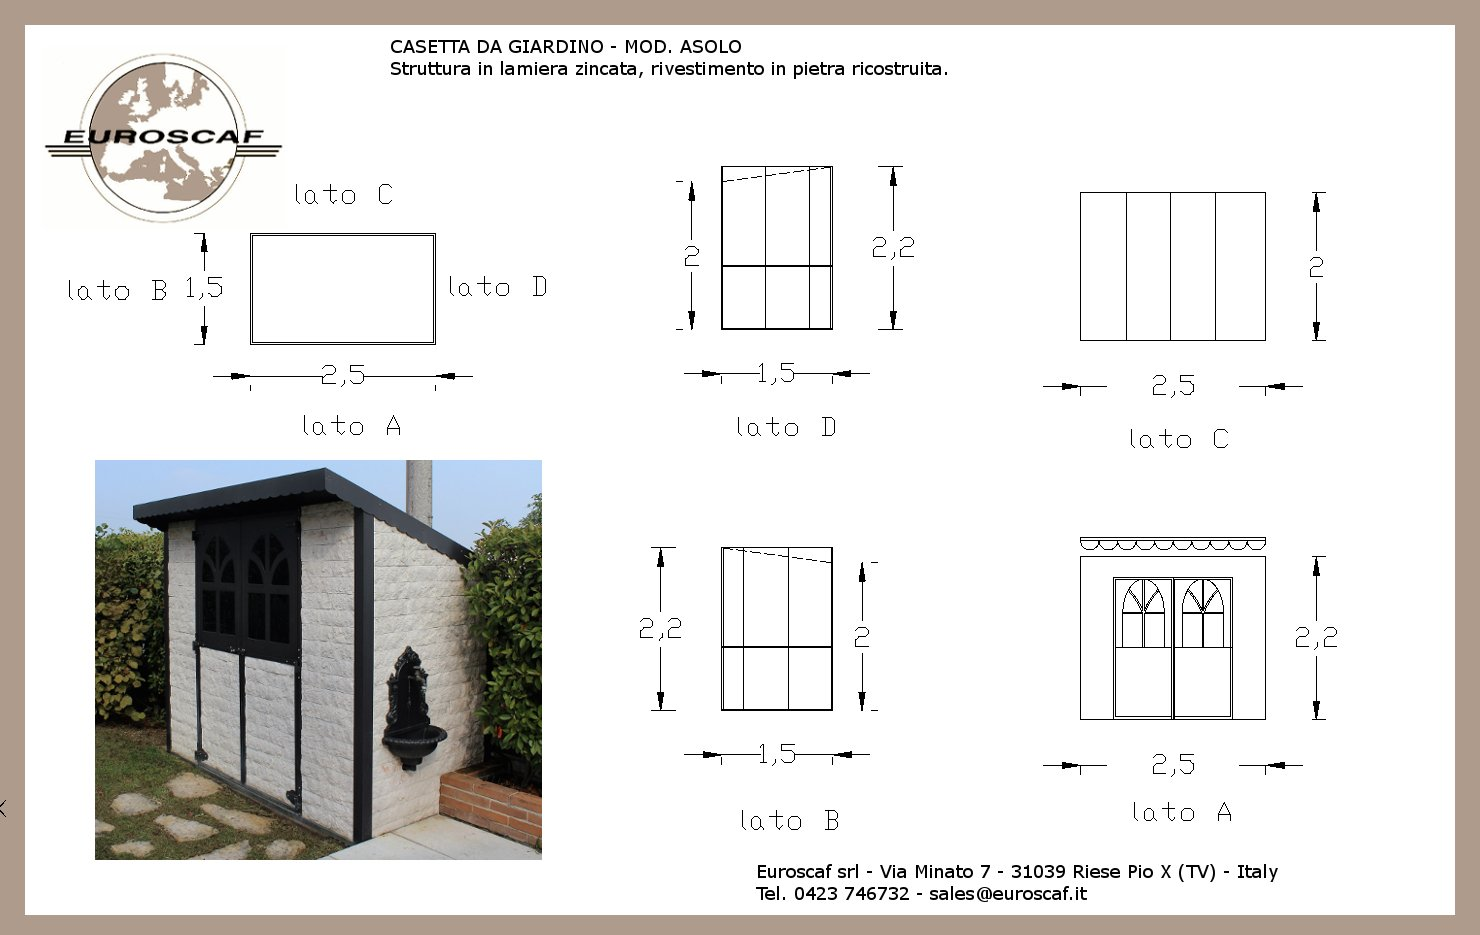 Garden shed mod. ASOLO technical description